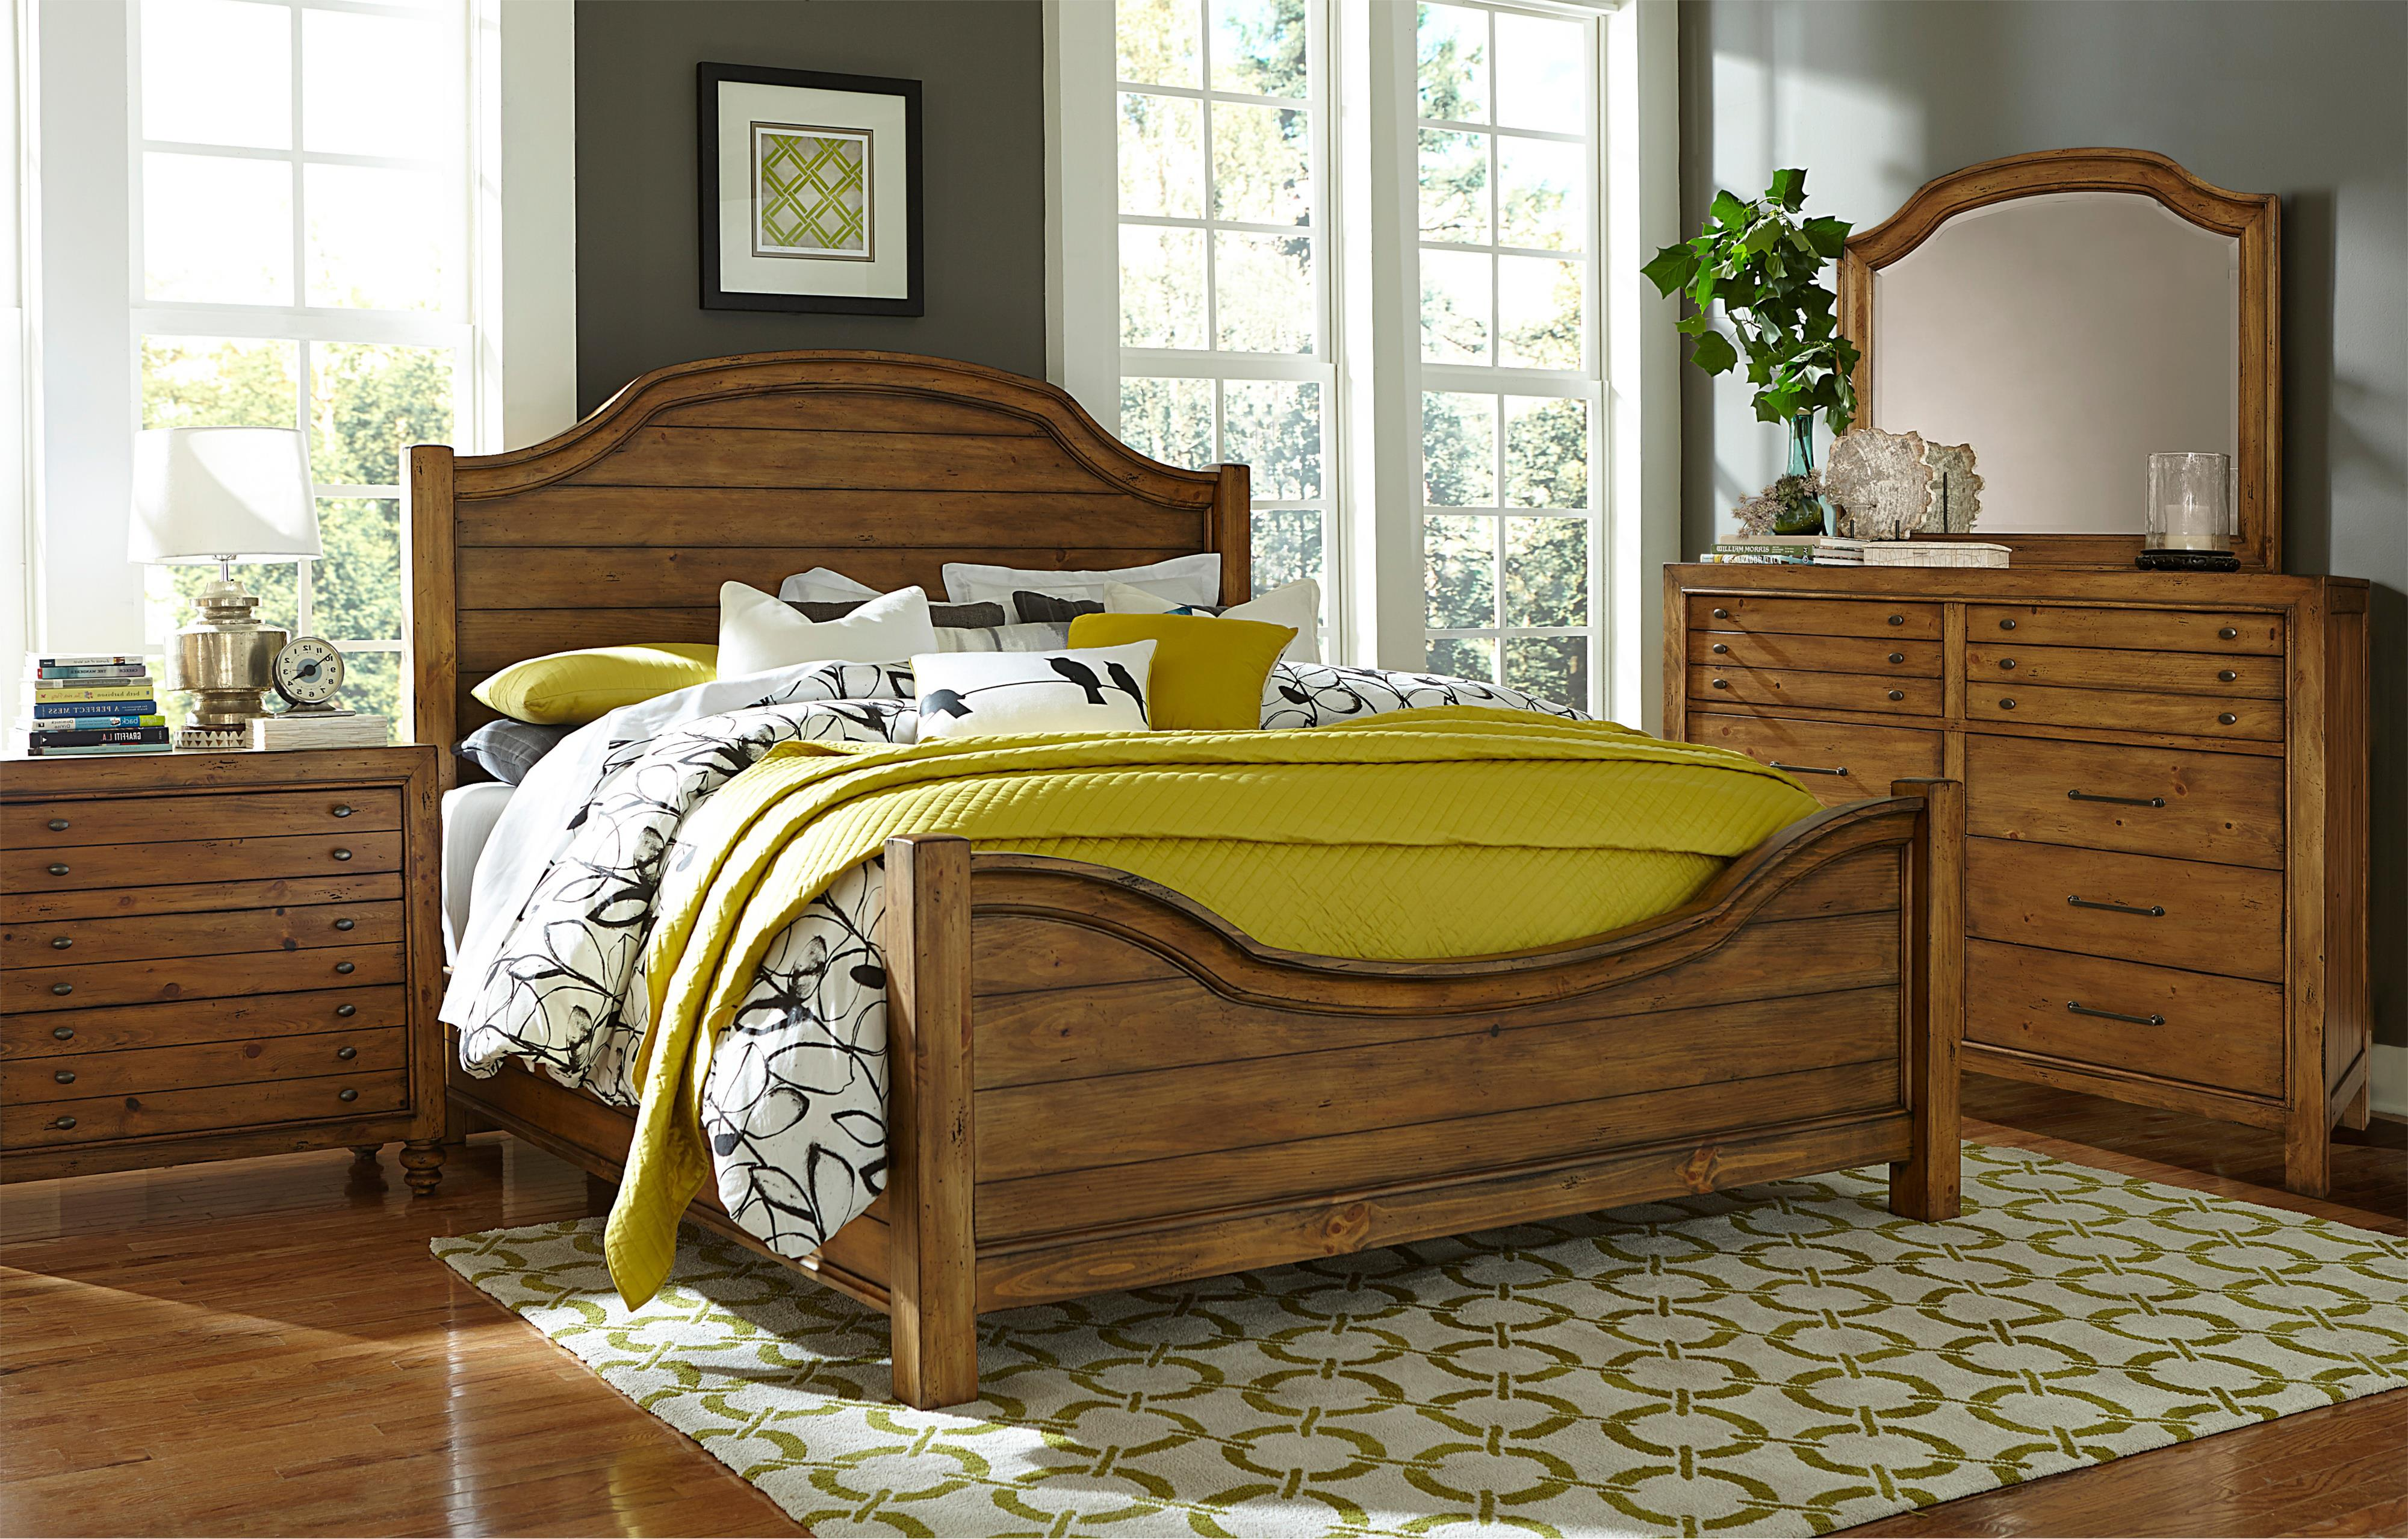 Broyhill Furniture Bethany Square King Bedroom Group - Item Number: 4930 K Bedroom Group 1